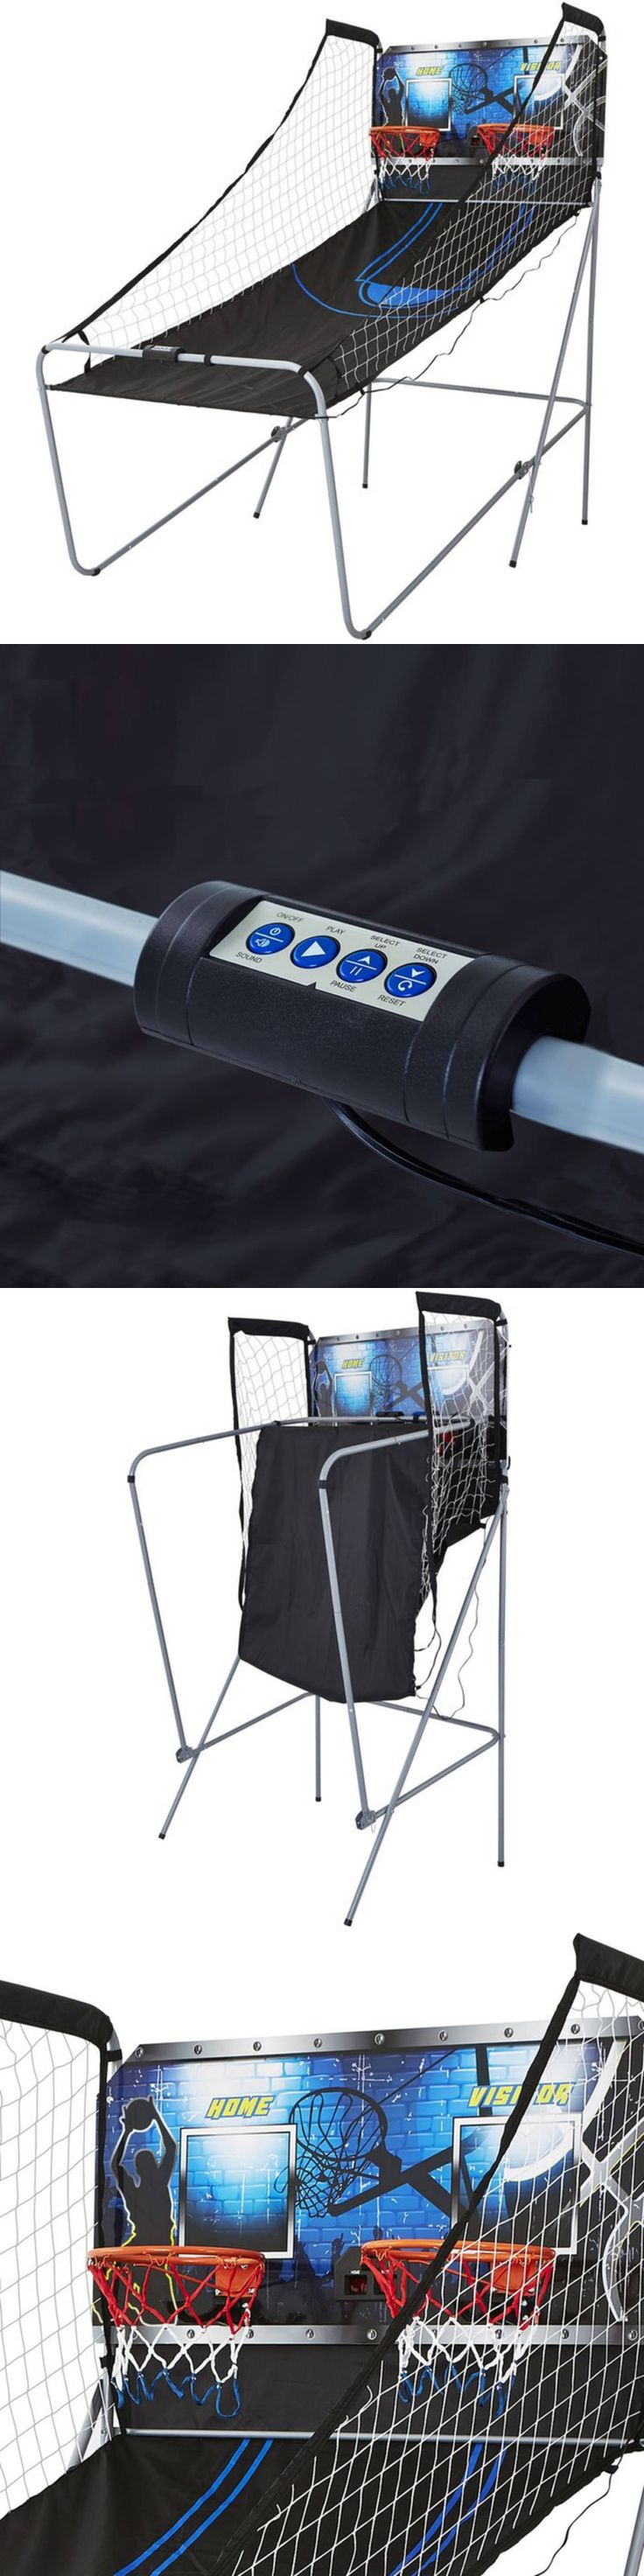 Other Indoor Games 36278: 2 Player Arcade Basketball Game 8 Game Options Md Sports Led Scoring System New -> BUY IT NOW ONLY: $71.99 on eBay!